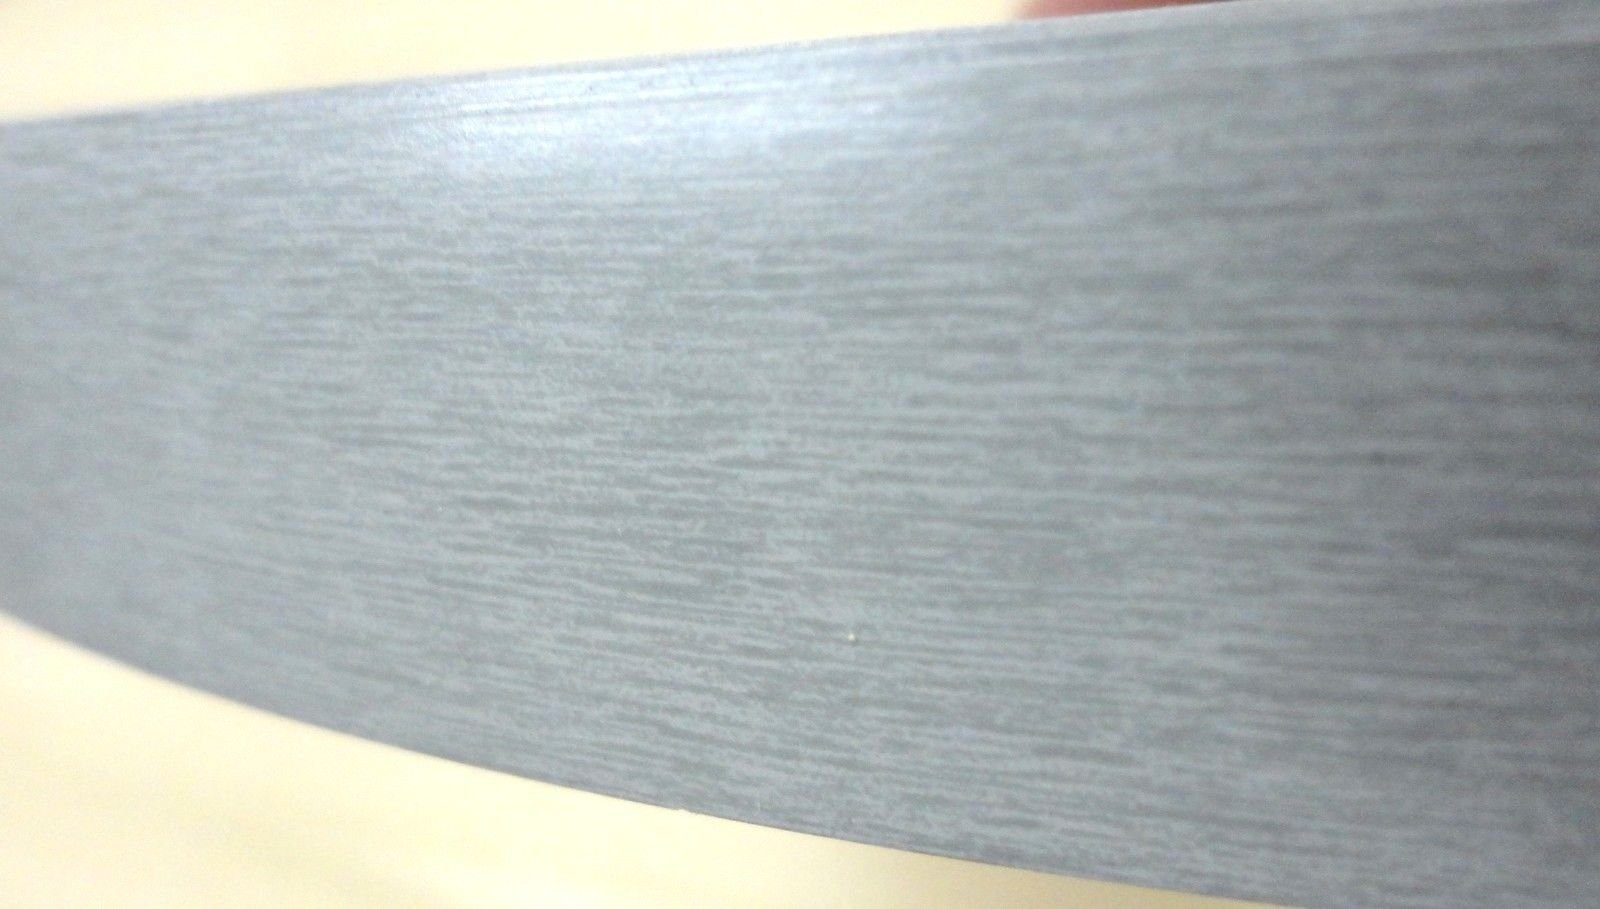 Brushed Aluminum PVC edgebanding 15/16'' x 120'' with no adhesive (simulated)